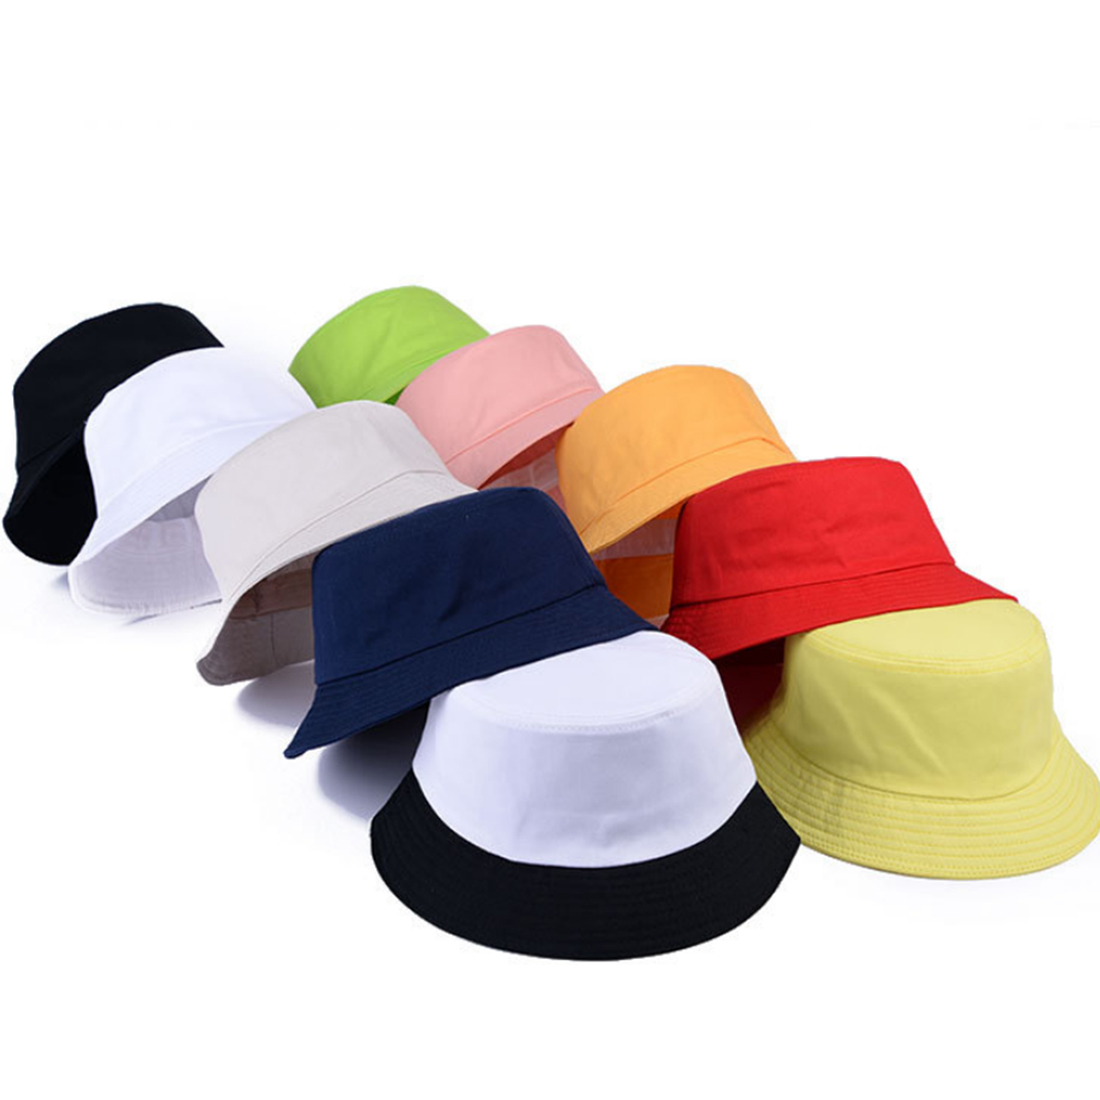 8566bc98252ba Buy bucket hat color and get free shipping on AliExpress.com